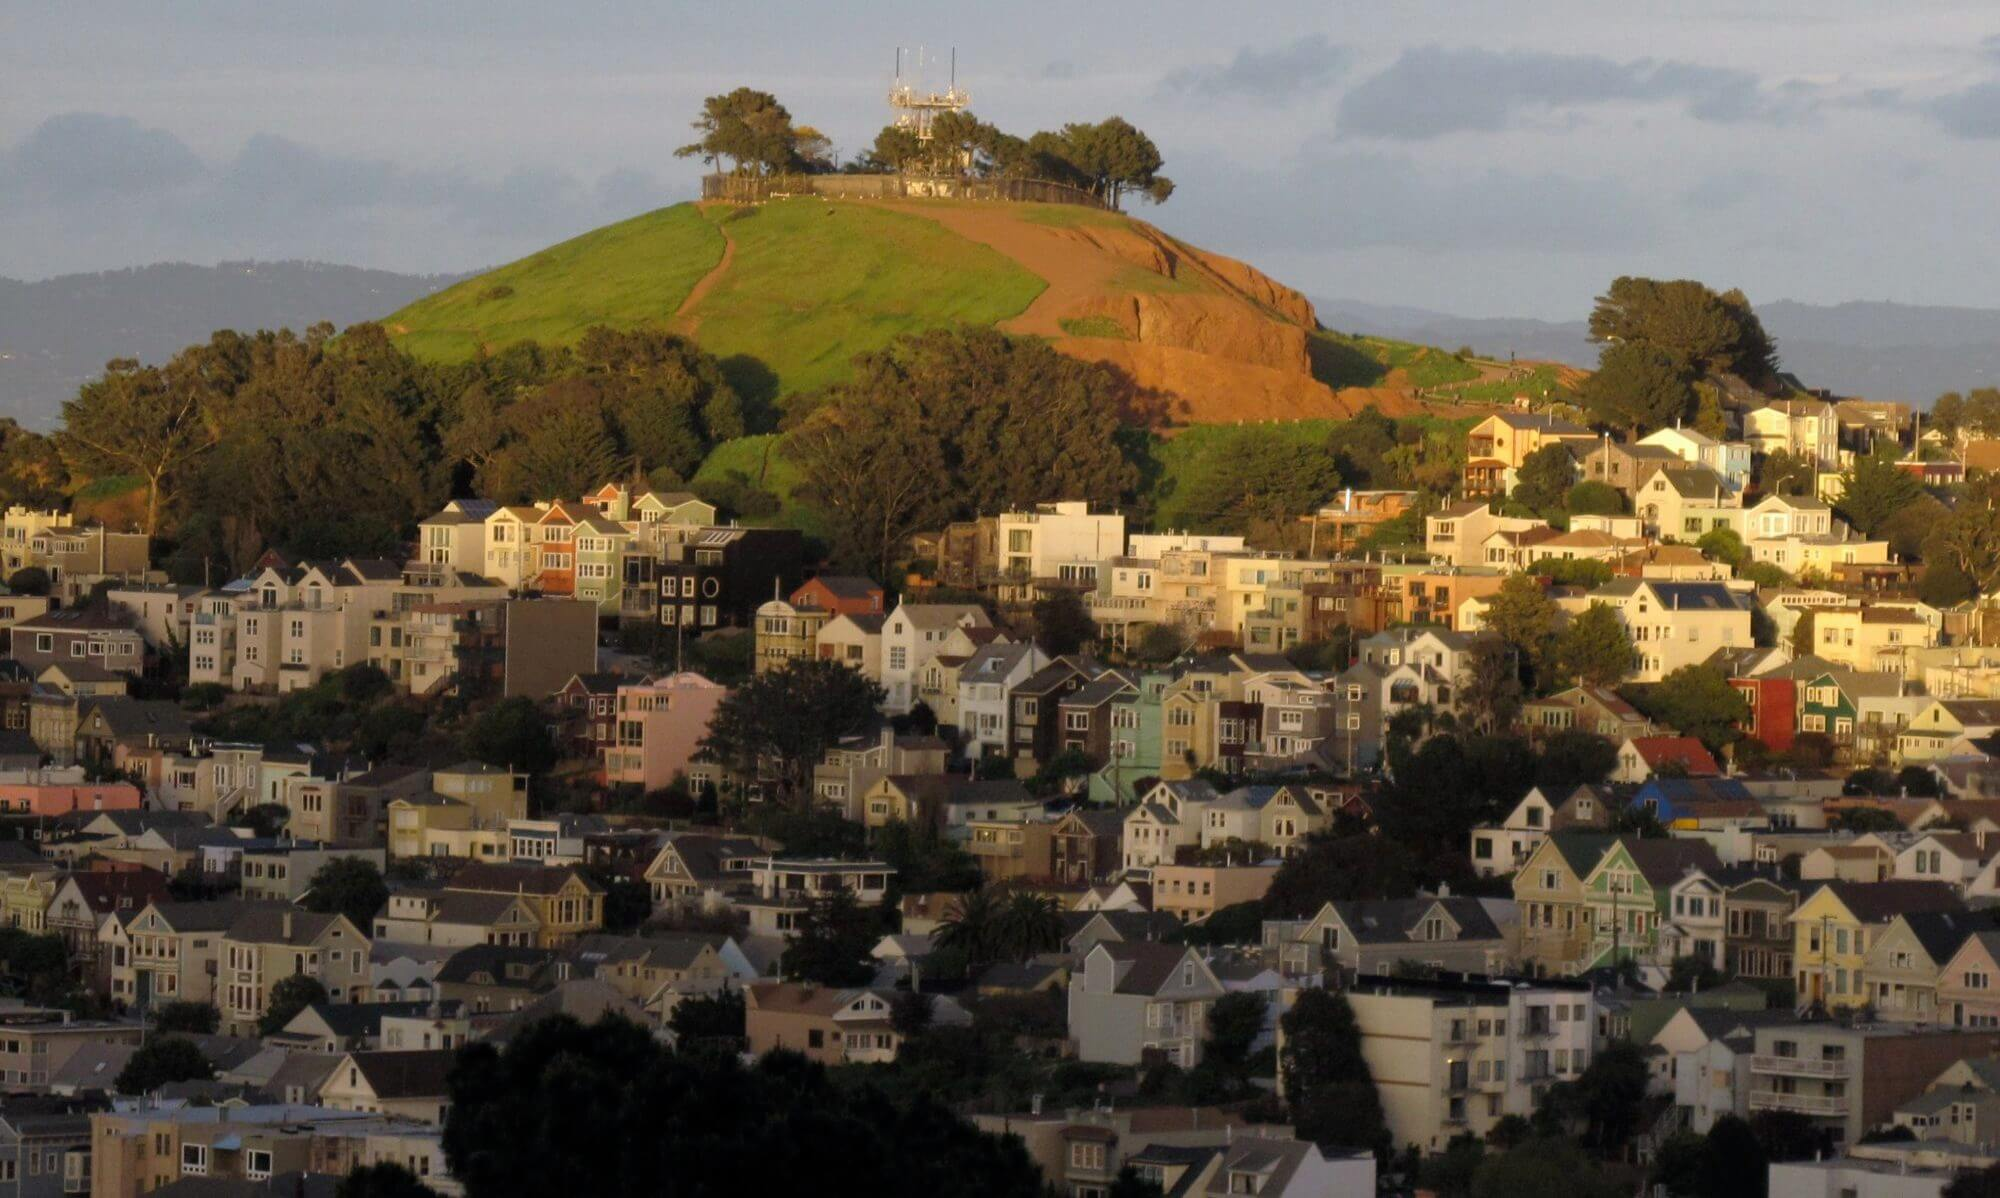 Bernal heights hill and neighborhood